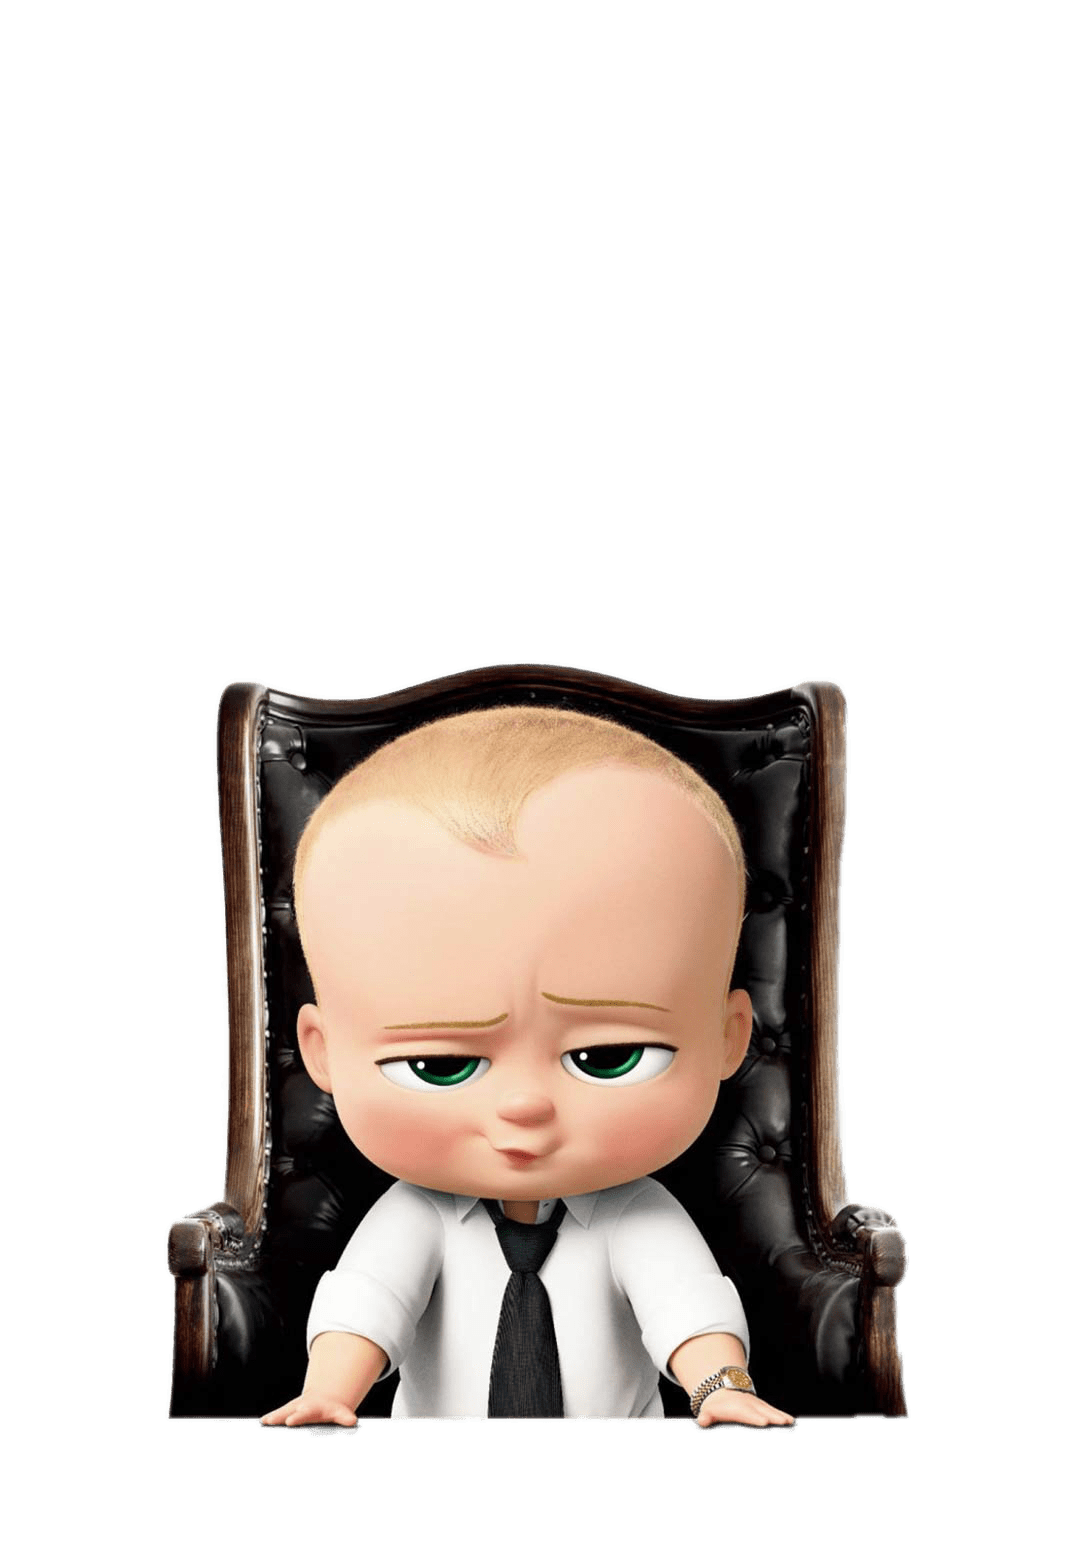 Cute Small Girl Wallpaper Download Boss Baby Png Amp Free Boss Baby Png Transparent Images